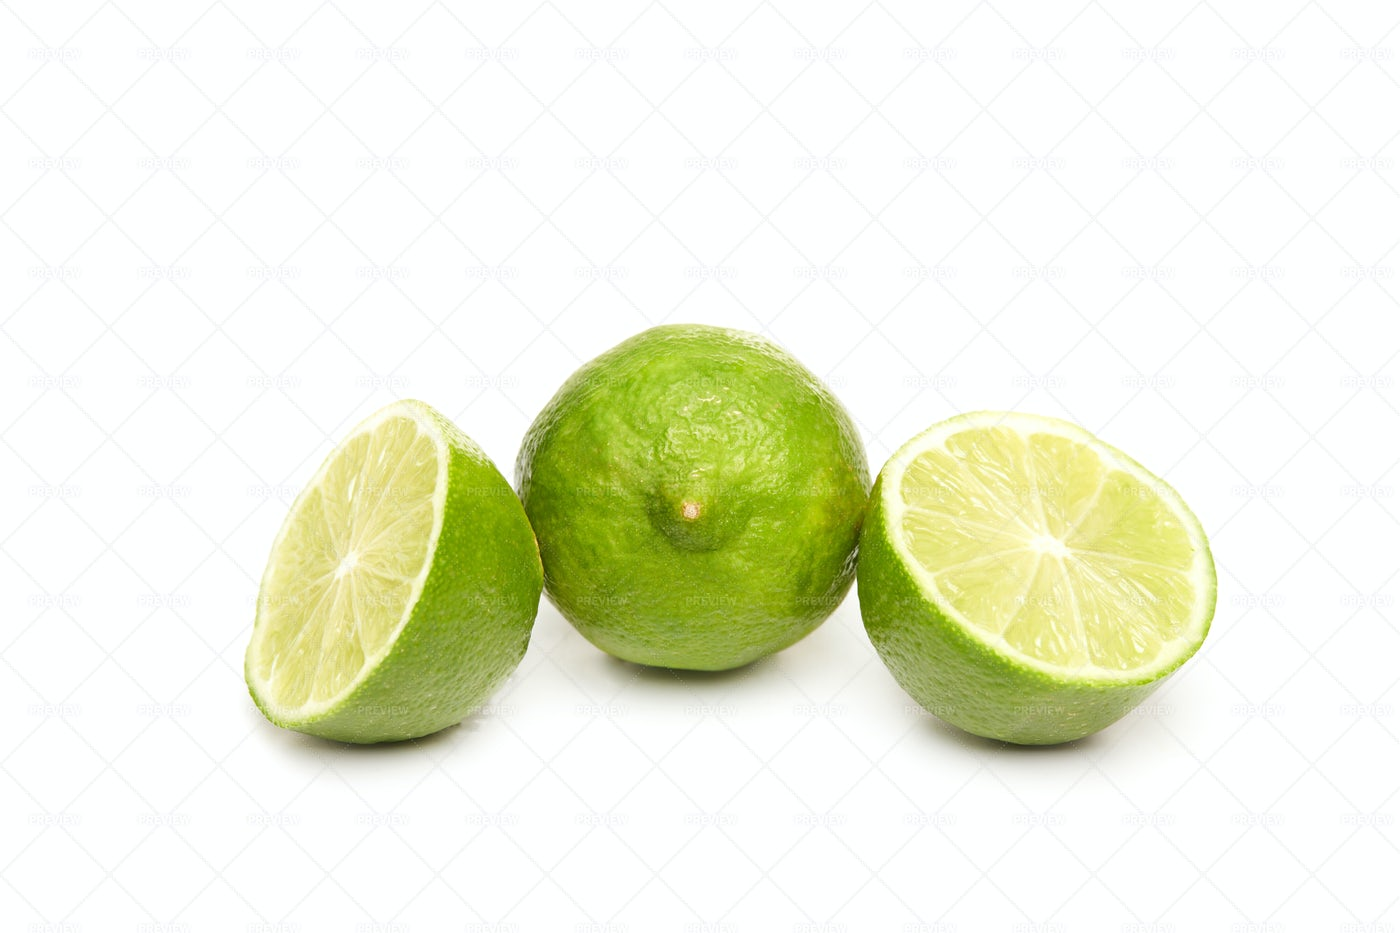 Fresh And Sliced Lime Isolated: Stock Photos